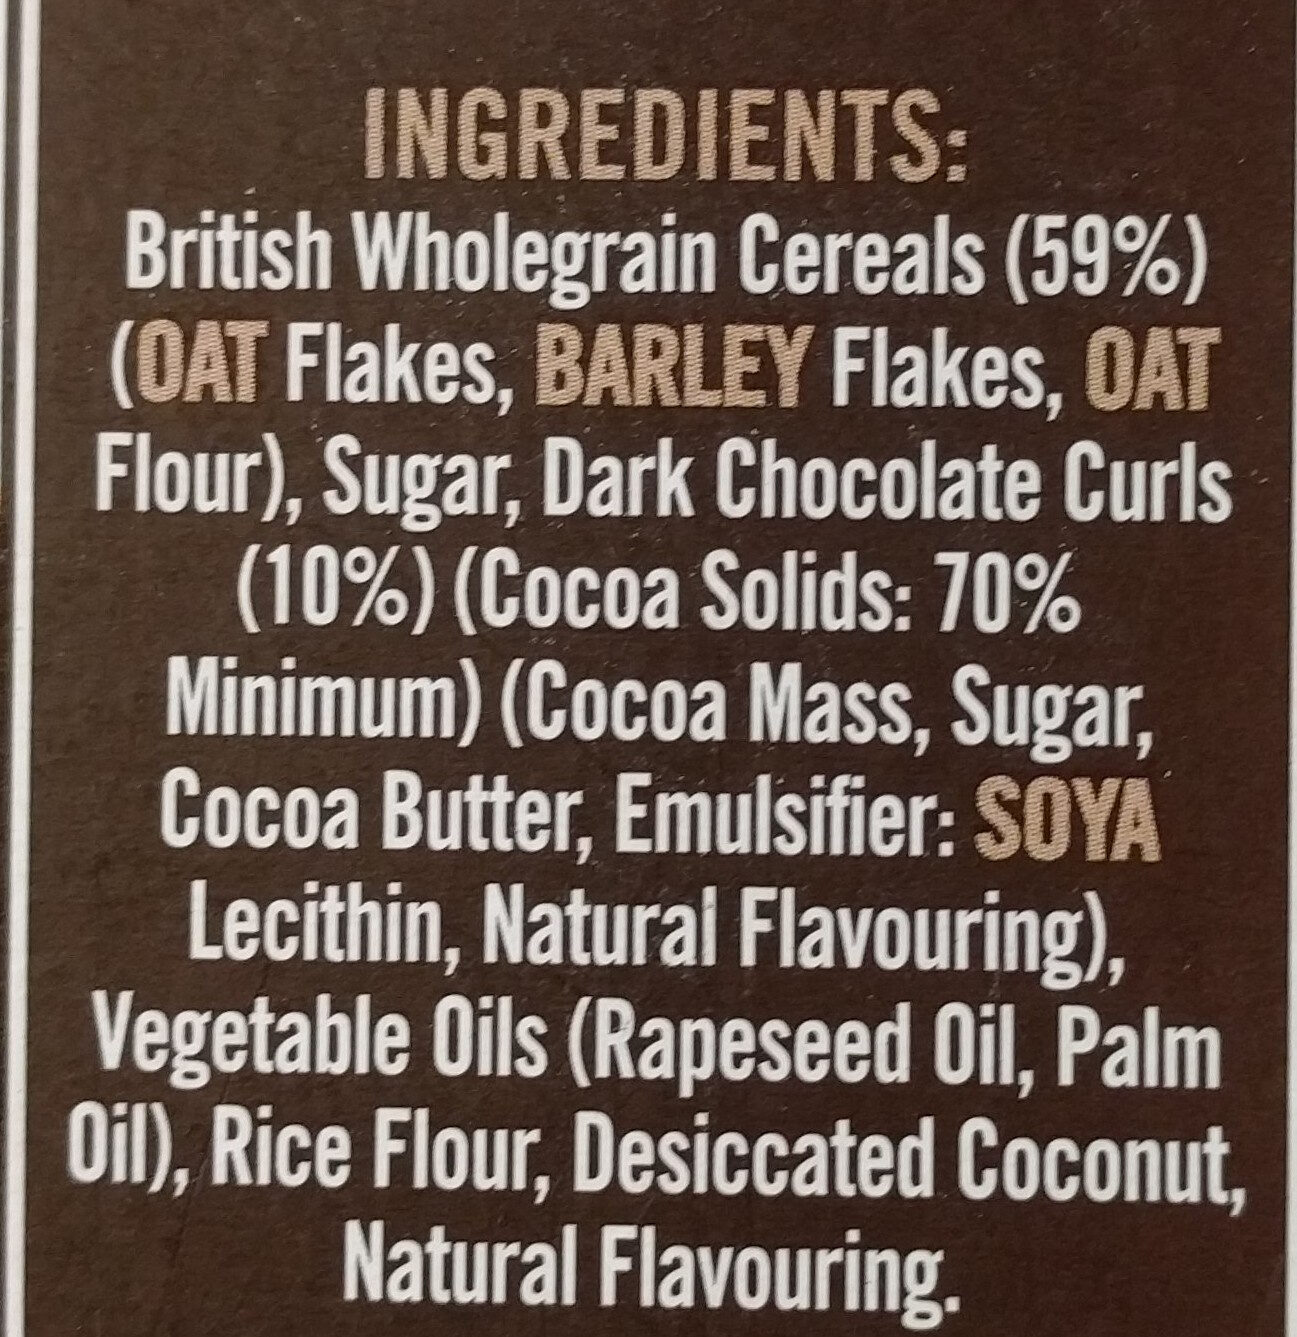 Country crisp with 70% Chocolate - Ingredients